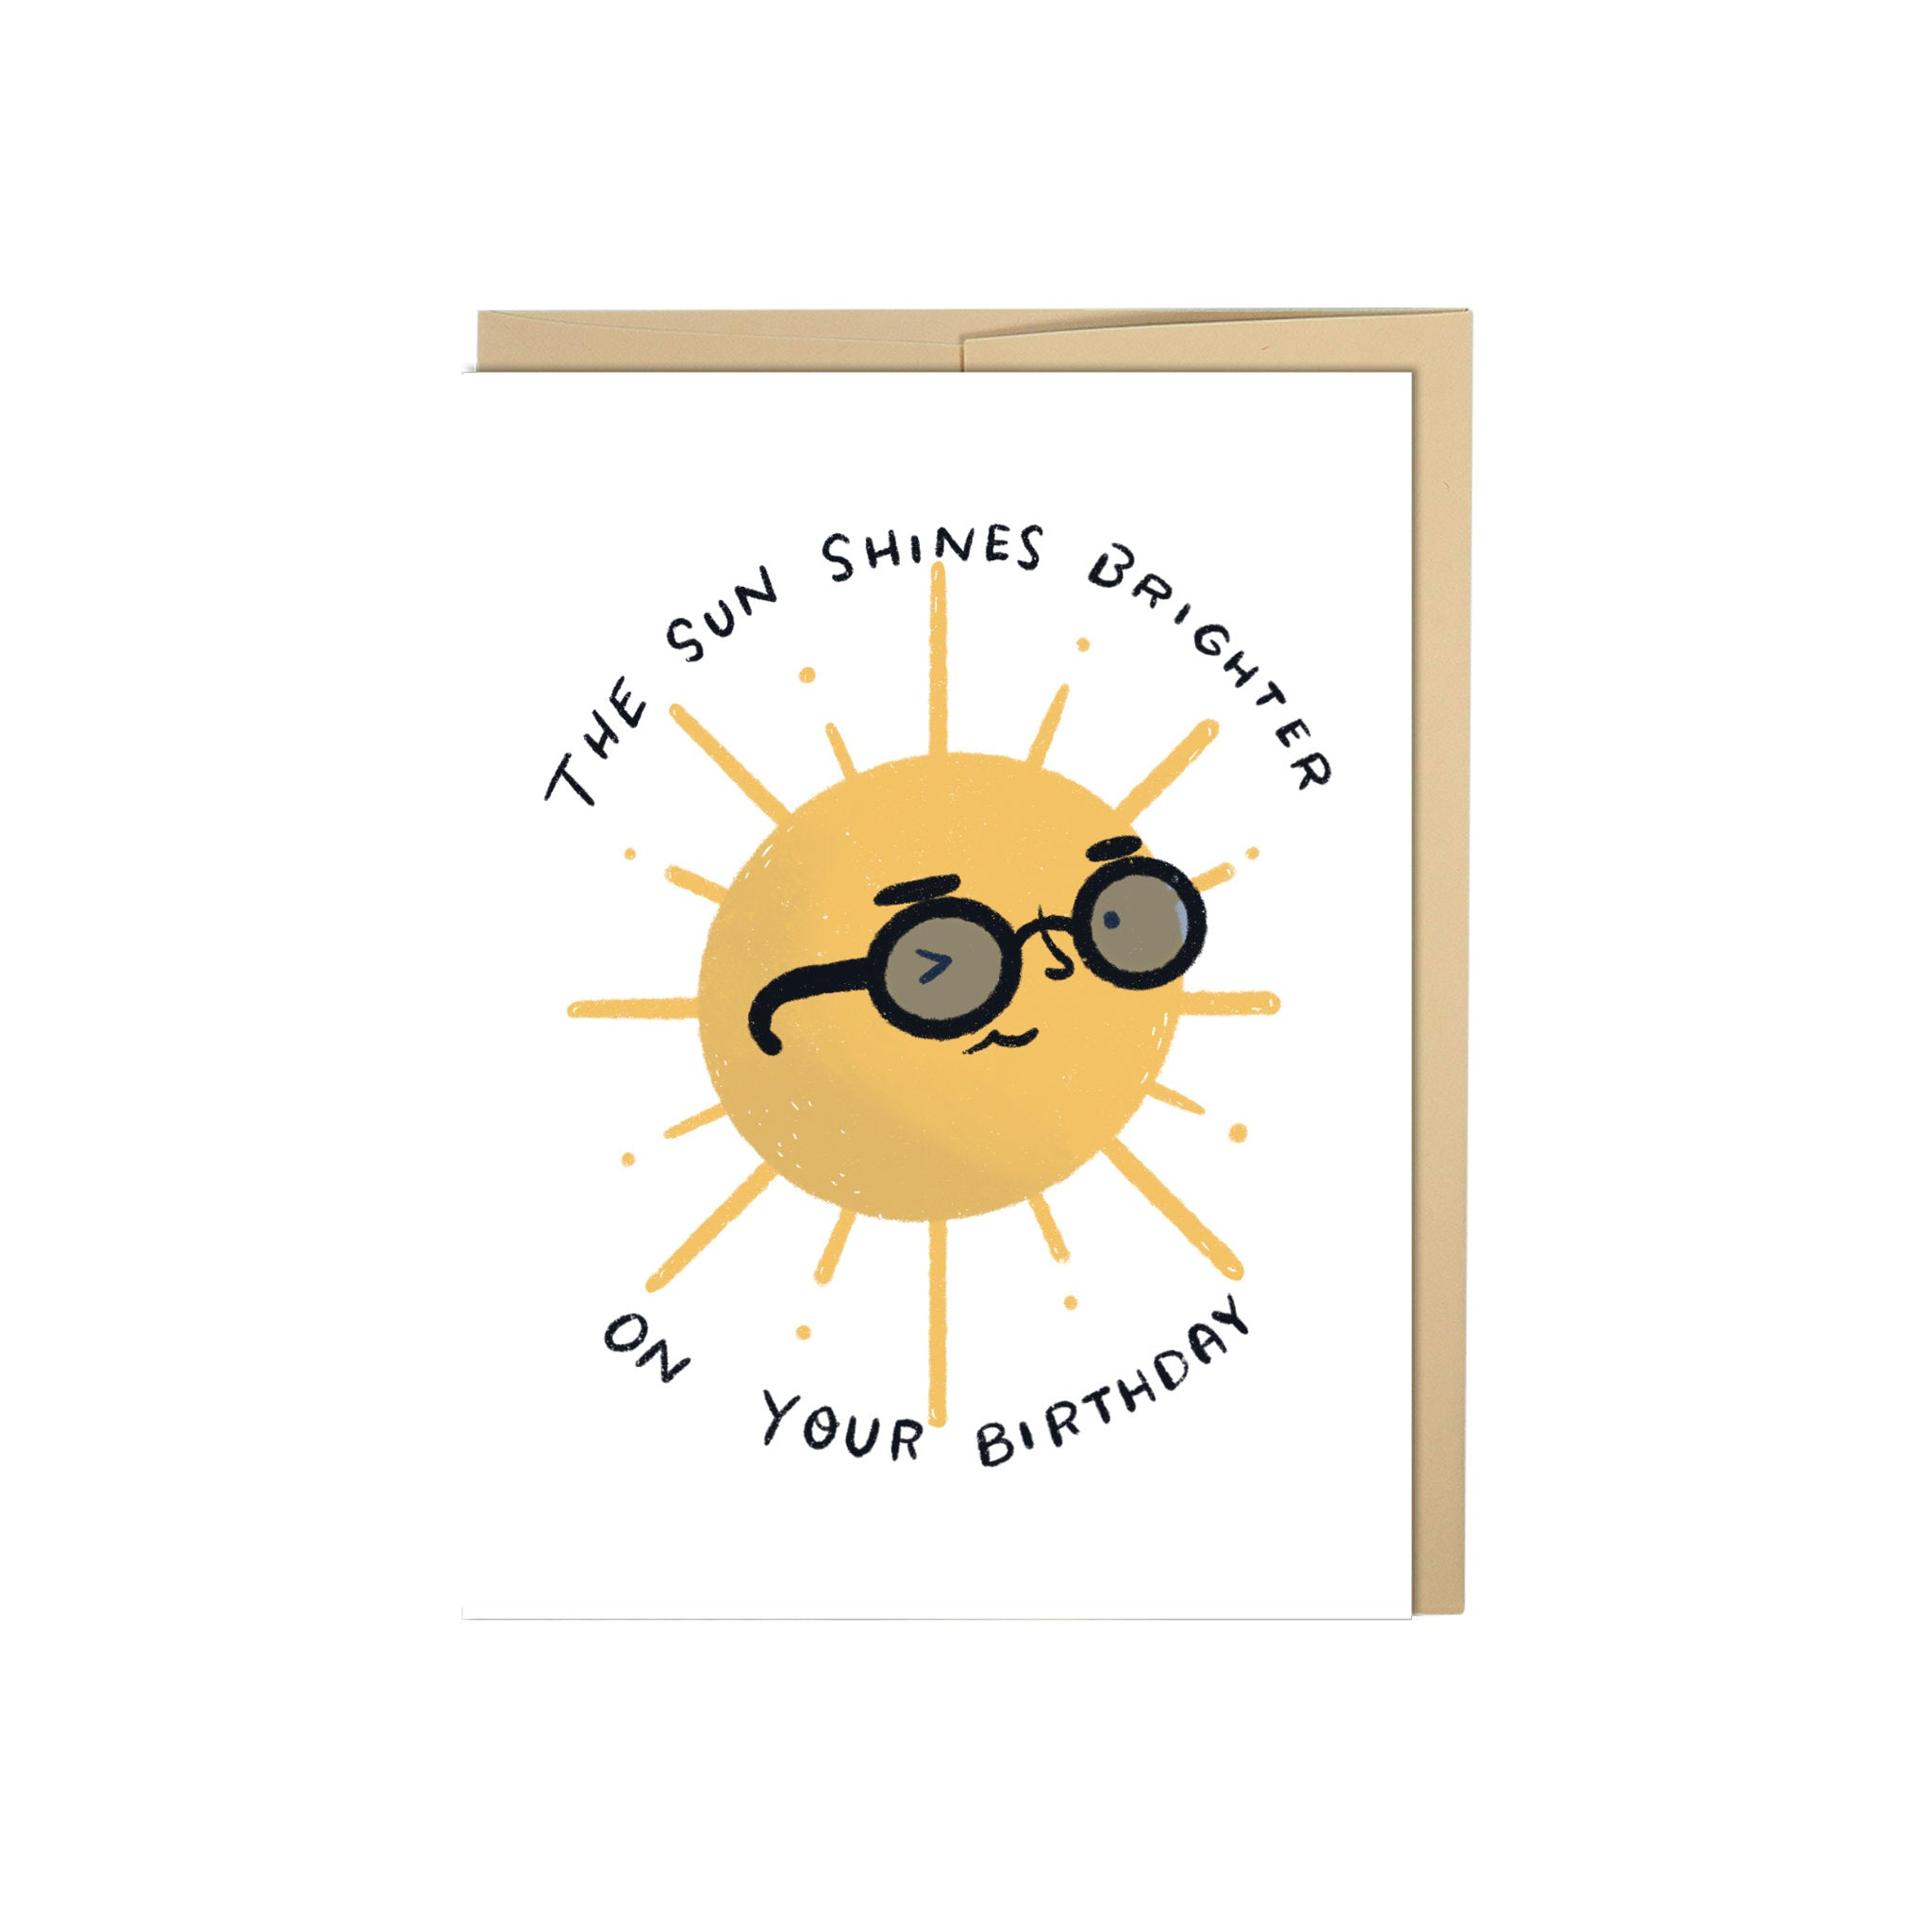 The Sun Shines Brighter On Your Birthday, Congratulations, Birthday Card, Sunshine, Friend Card, Cool Friend Card, BFF